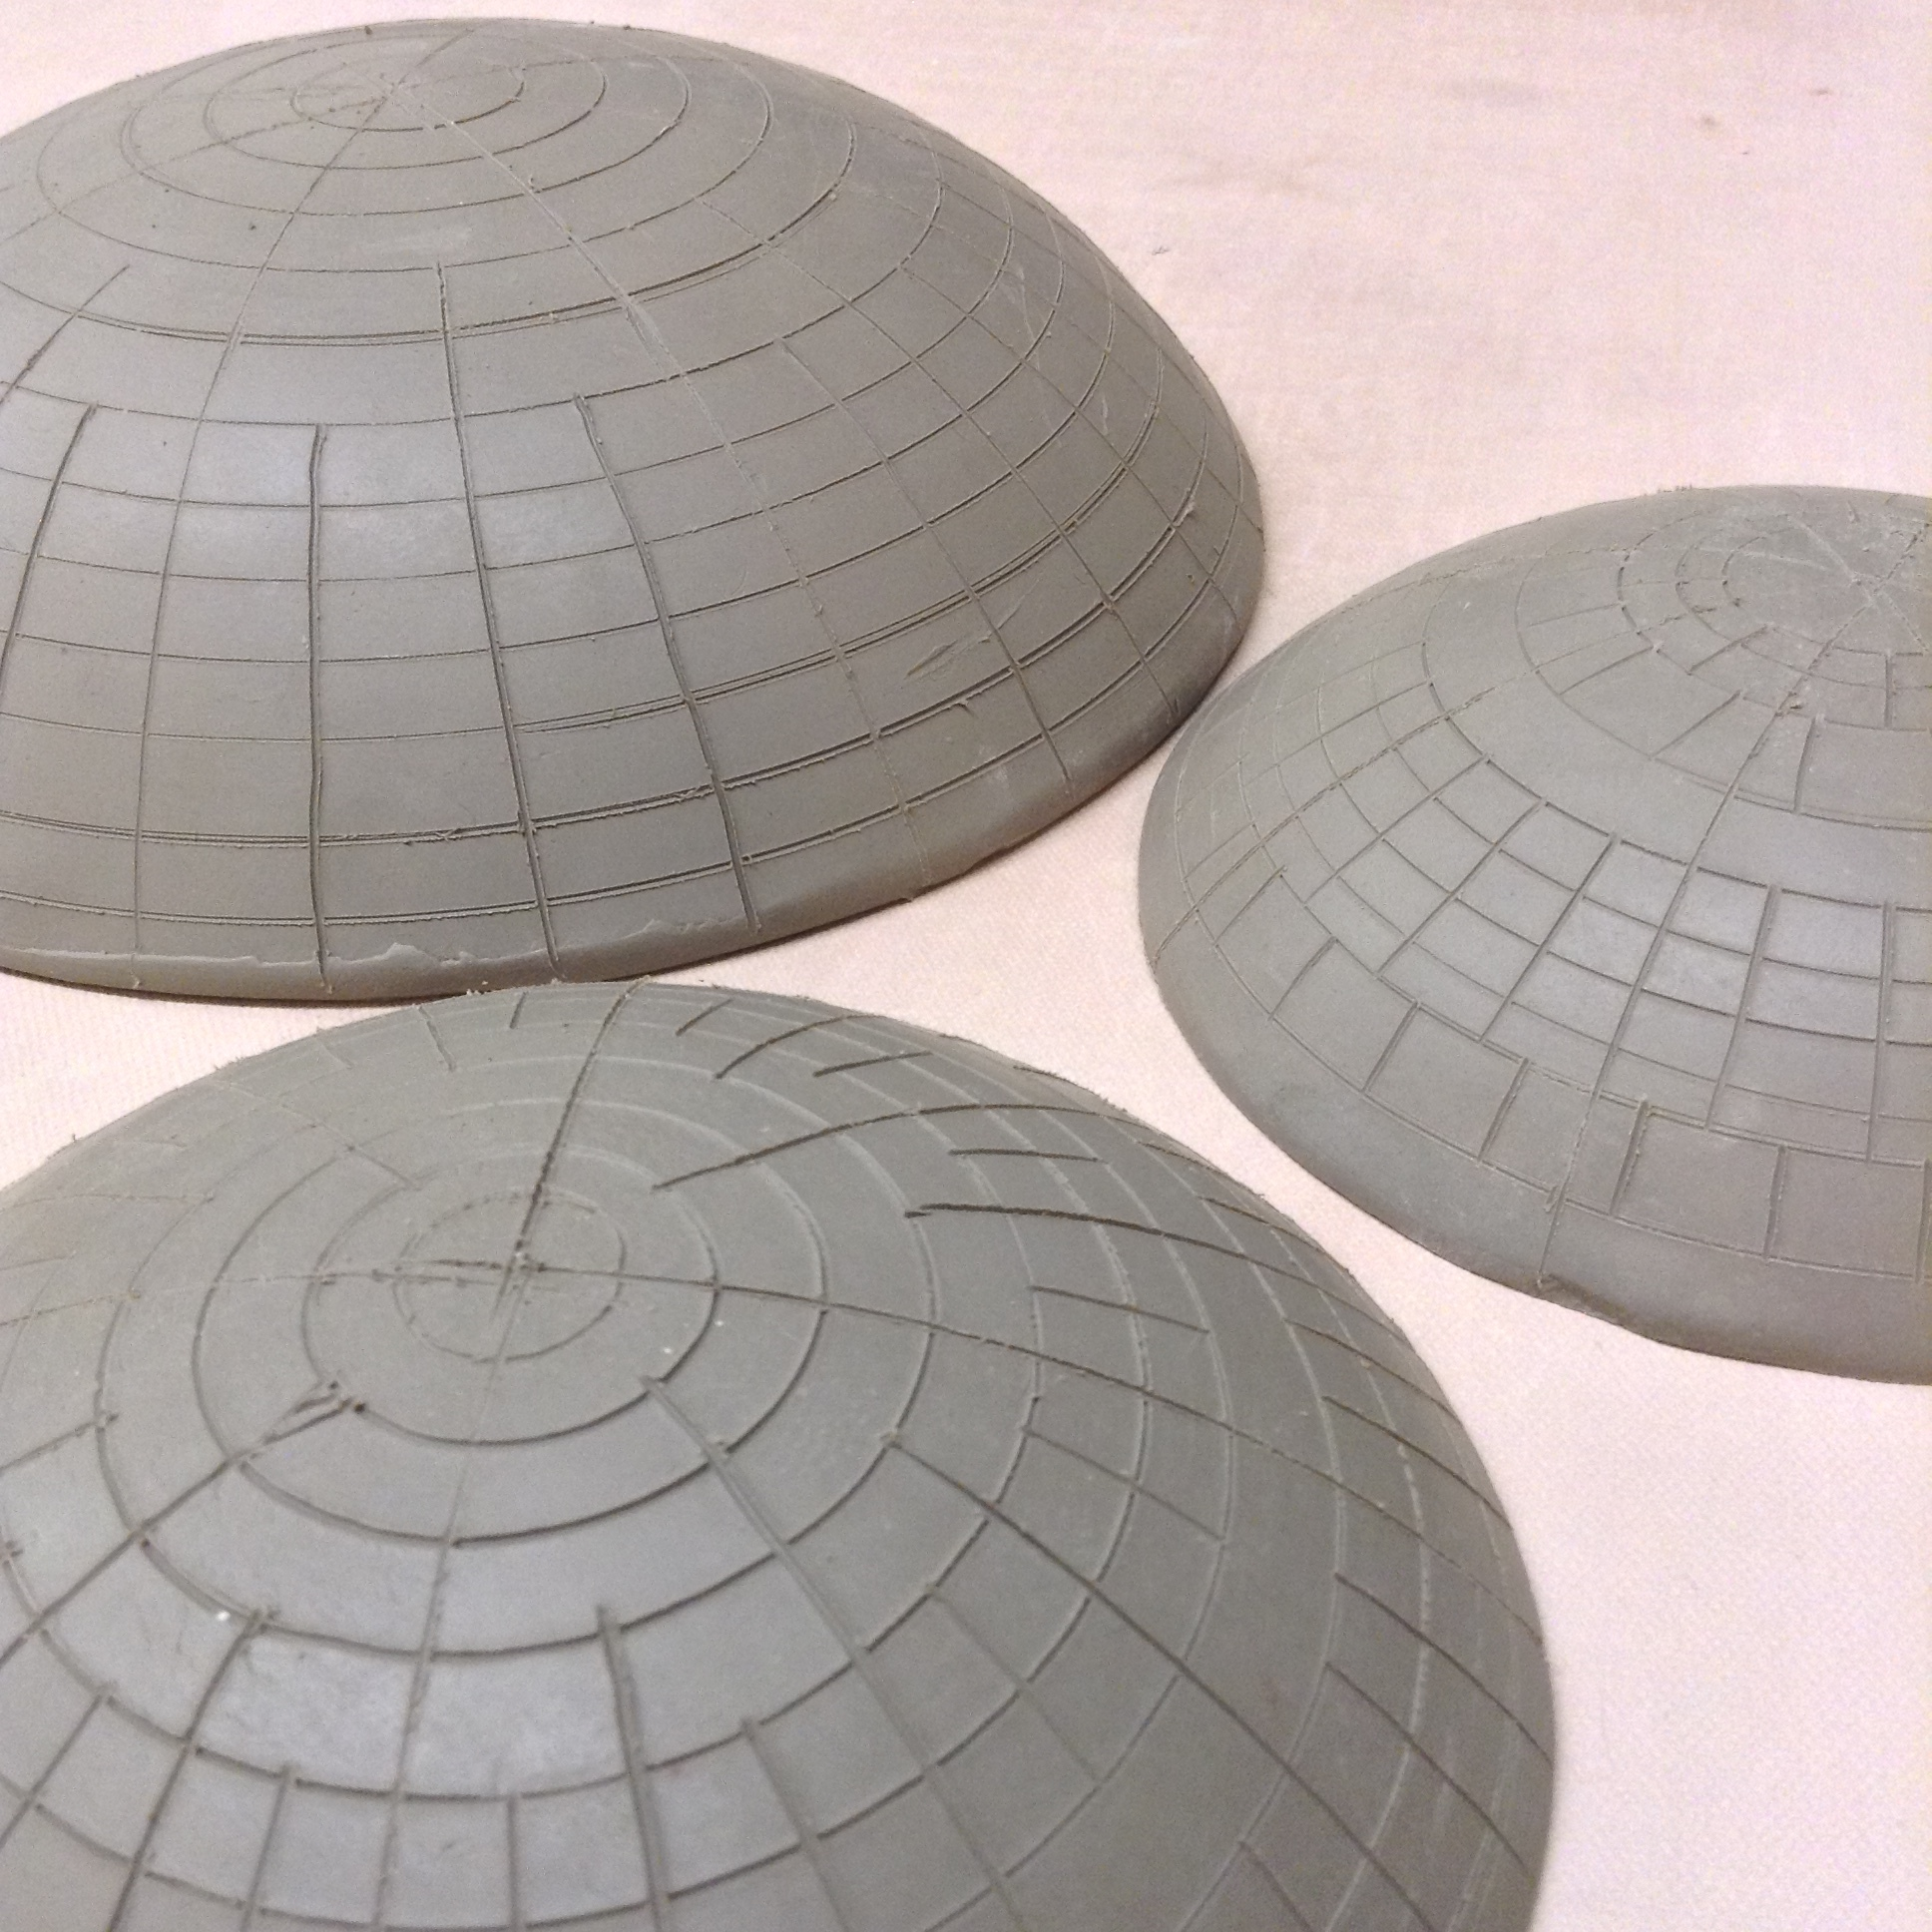 Several clay dome shapes with lines drawn on outside to indicate to me where to drill the holes. Unclear yet whether these subtle changes will matter after all is finished. But I could always make these as just normal ceramic bowls!